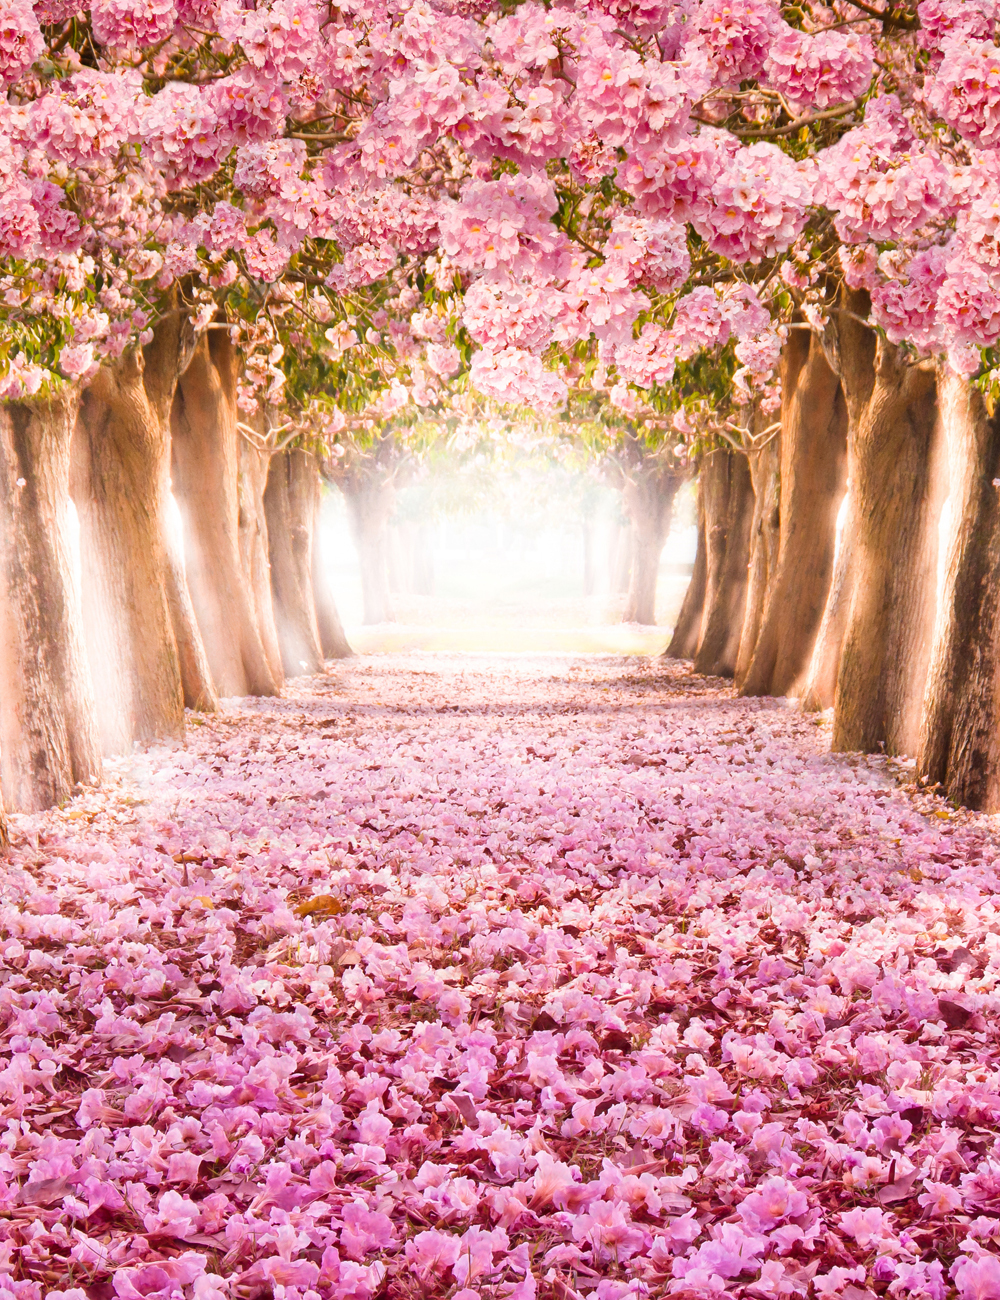 send rolled ! 8'X12' pink flower tree Backdrop - romantic tunnel, girls party - Printed Fabric Photography Background G0001